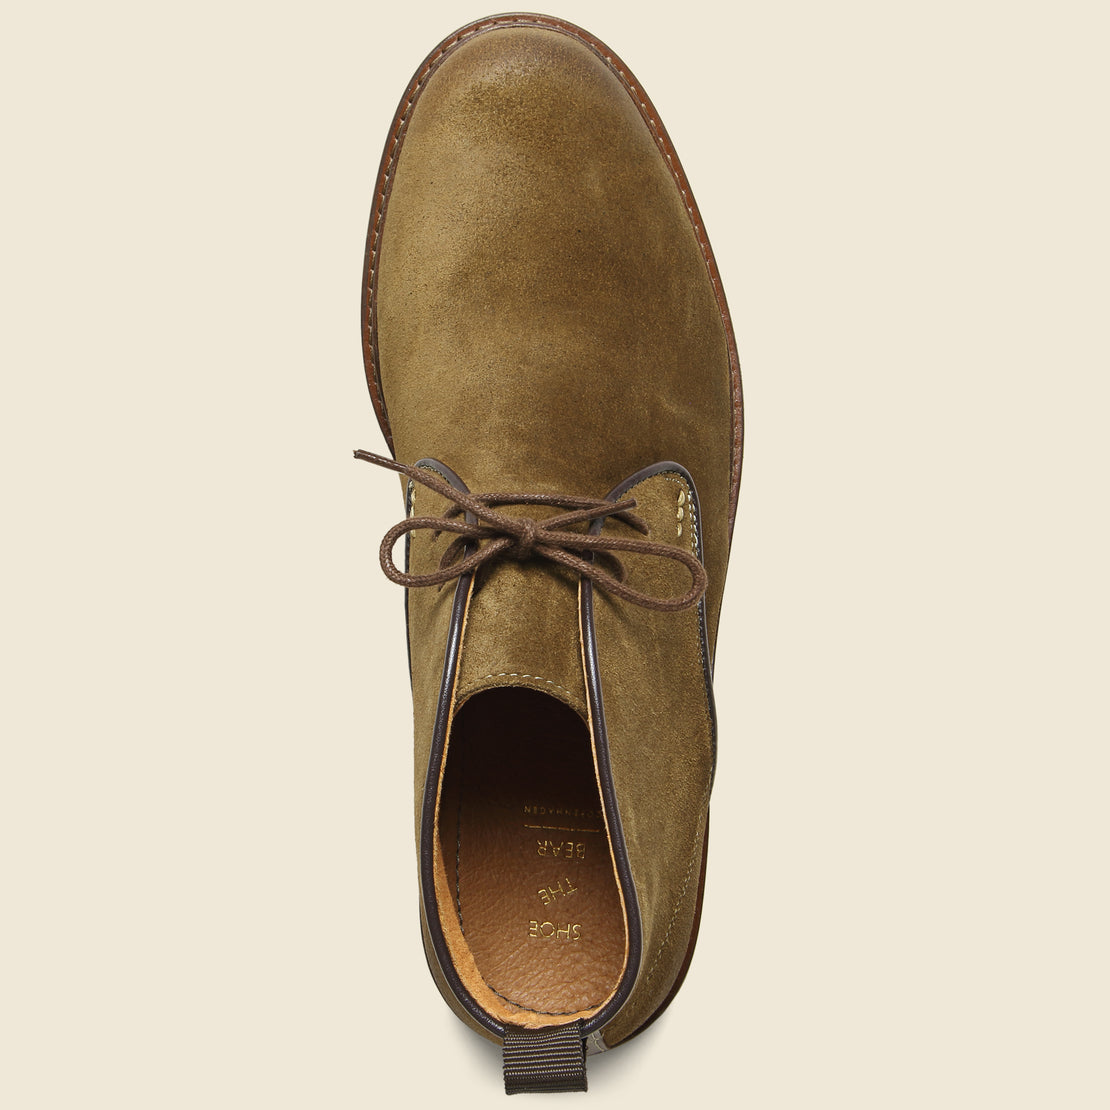 Dalton Suede Chukka - Brown